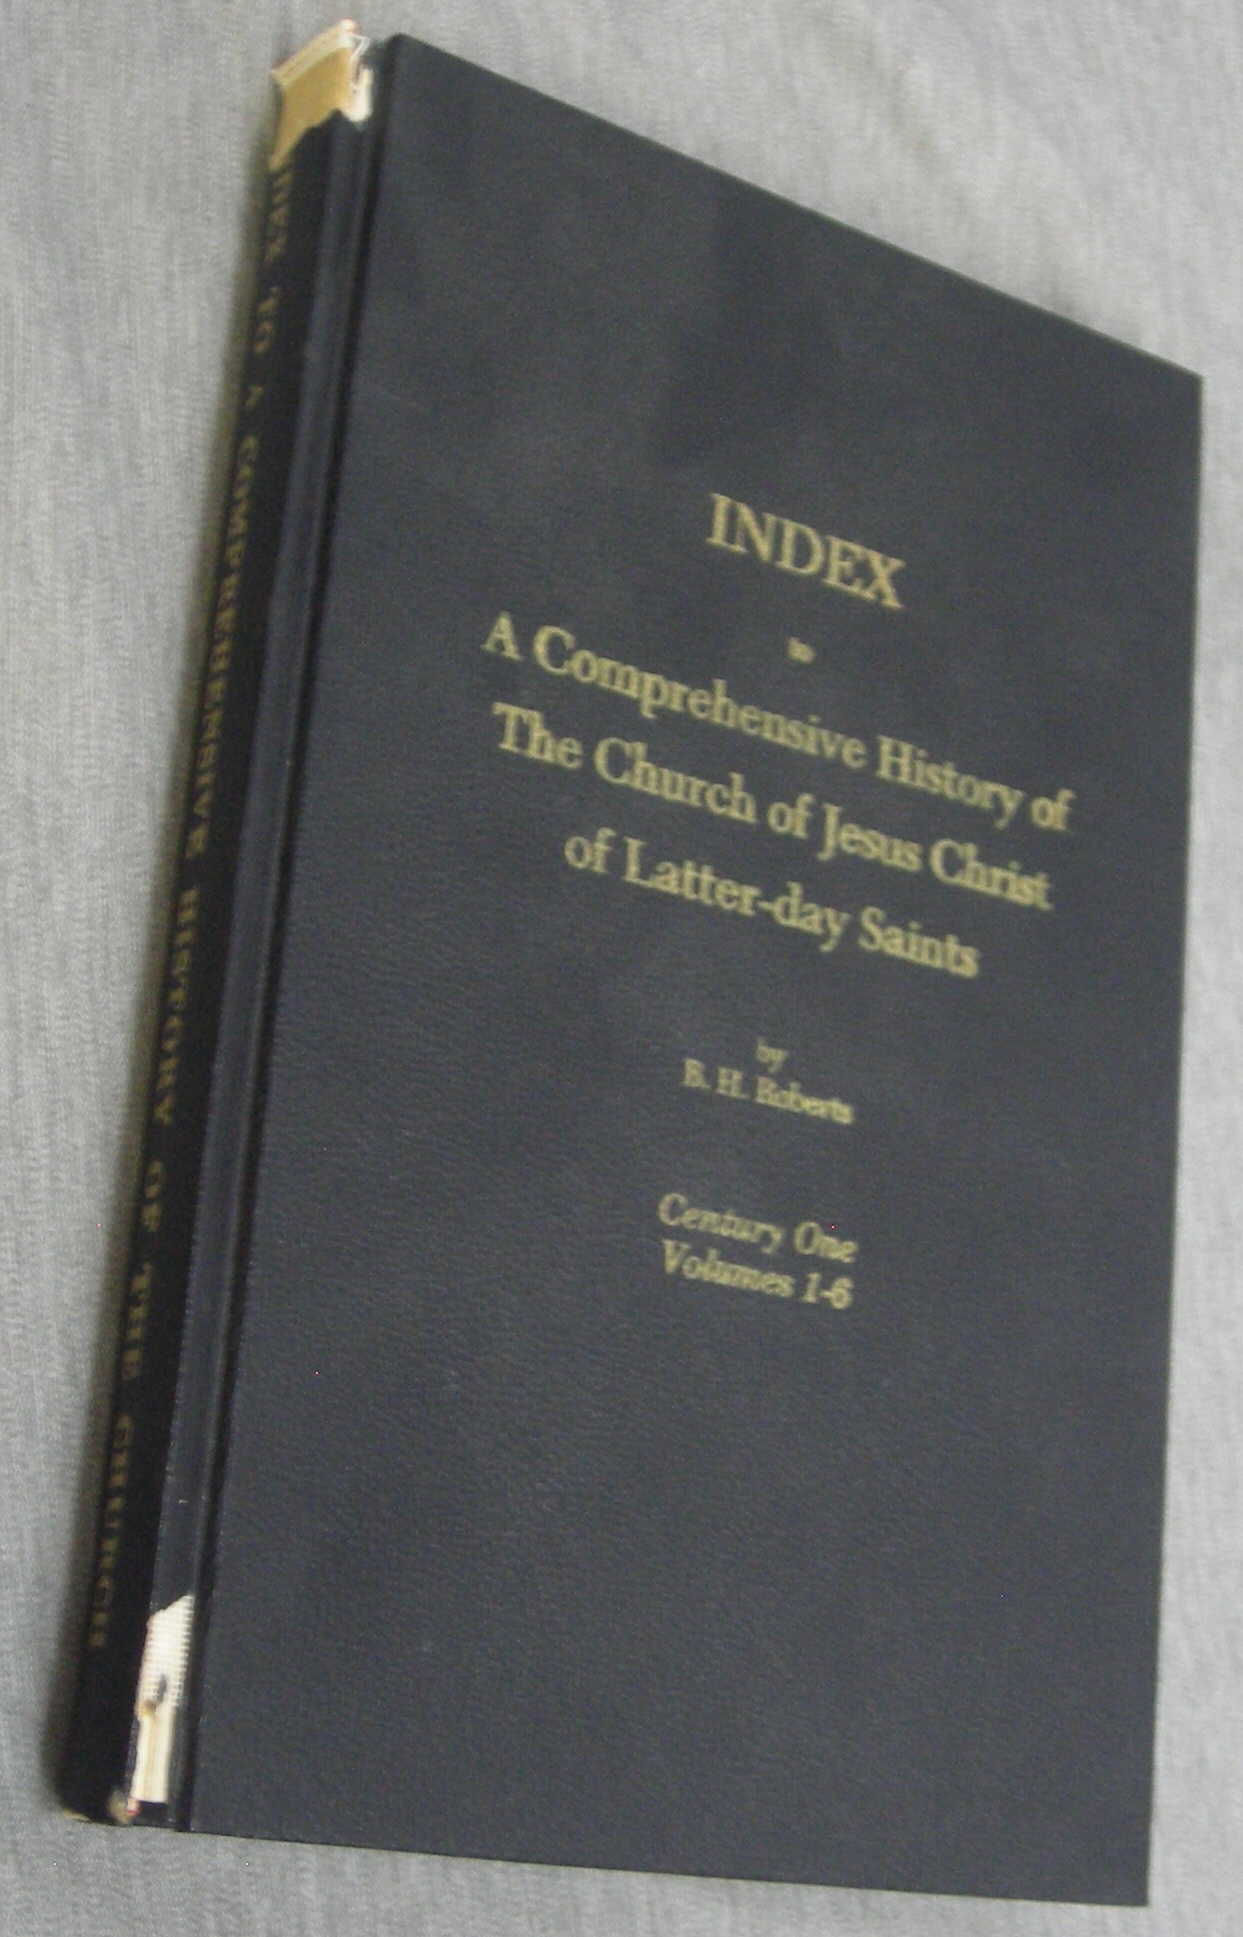 A Comprehensive History of the Church - Index - A Comprehensive History of the Church of Jesus Christ of Latter-Day Saints, Roberts, B. H. (Complier)